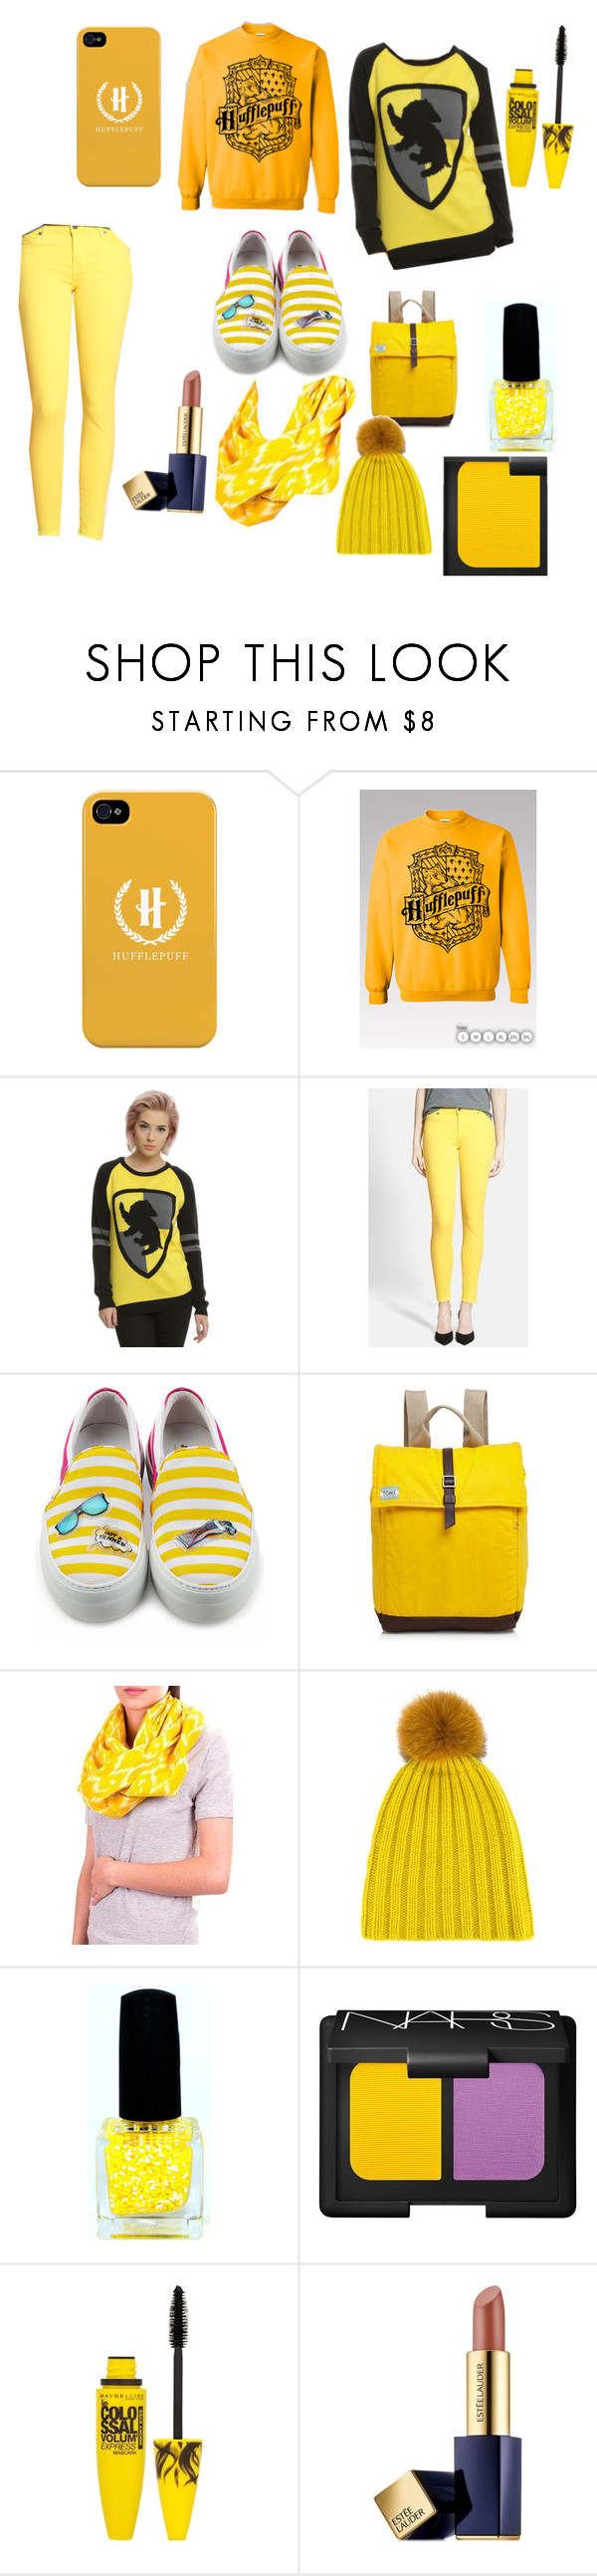 """""""Hufflepuff"""" by lizzy-pianist ❤ liked on Polyvore featuring Warner Bros., 7 For All Mankind, Joshua's, TOMS, NOVICA, DANIELAPI, NARS Cosmetics, Maybelline and Estée Lauder"""